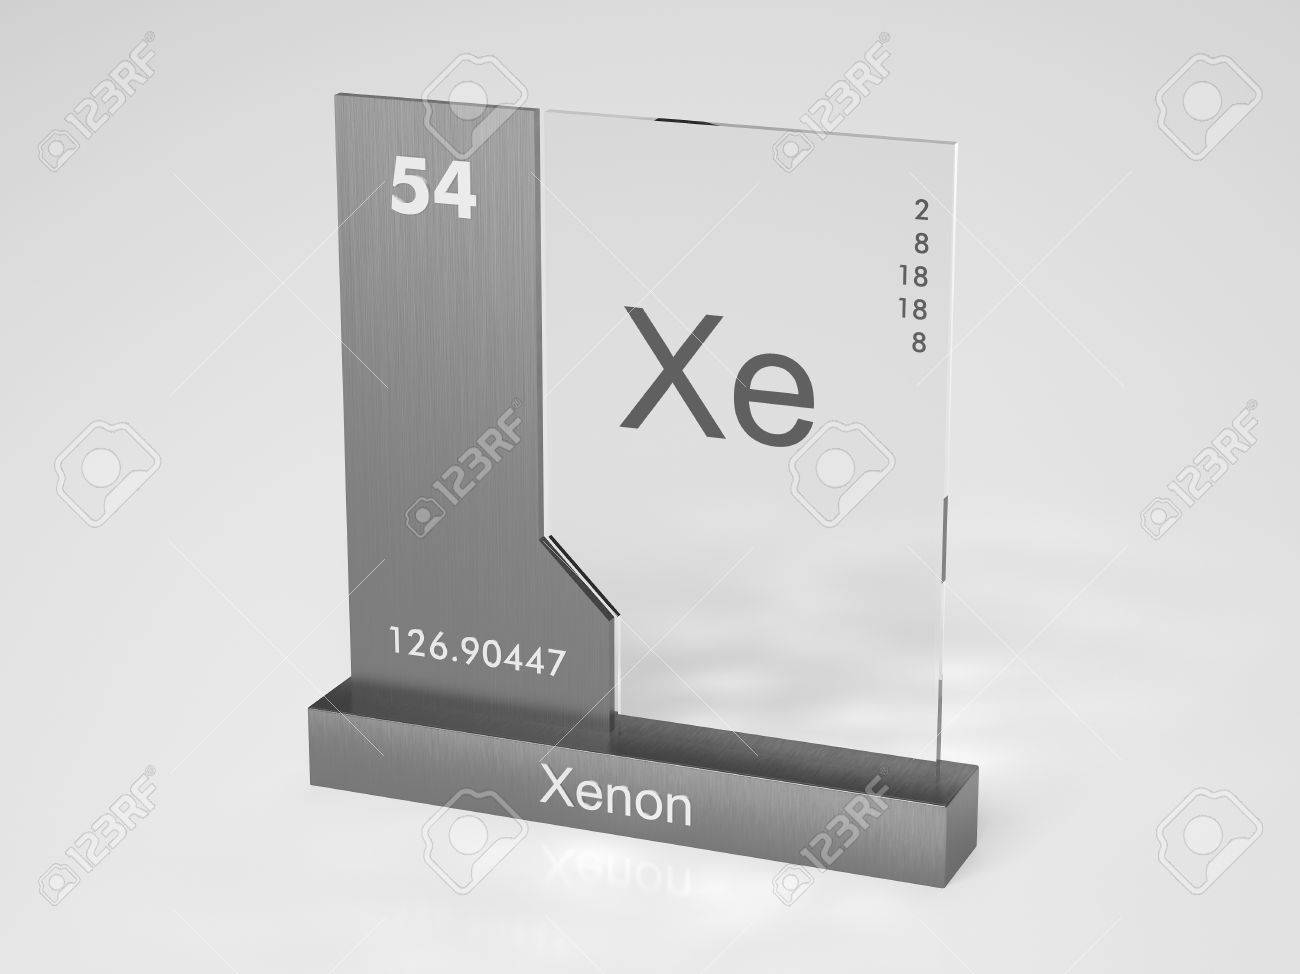 Periodic table helium facts images periodic table images periodic table oxygen facts choice image periodic table images xenon periodic table facts gallery periodic table gamestrikefo Images